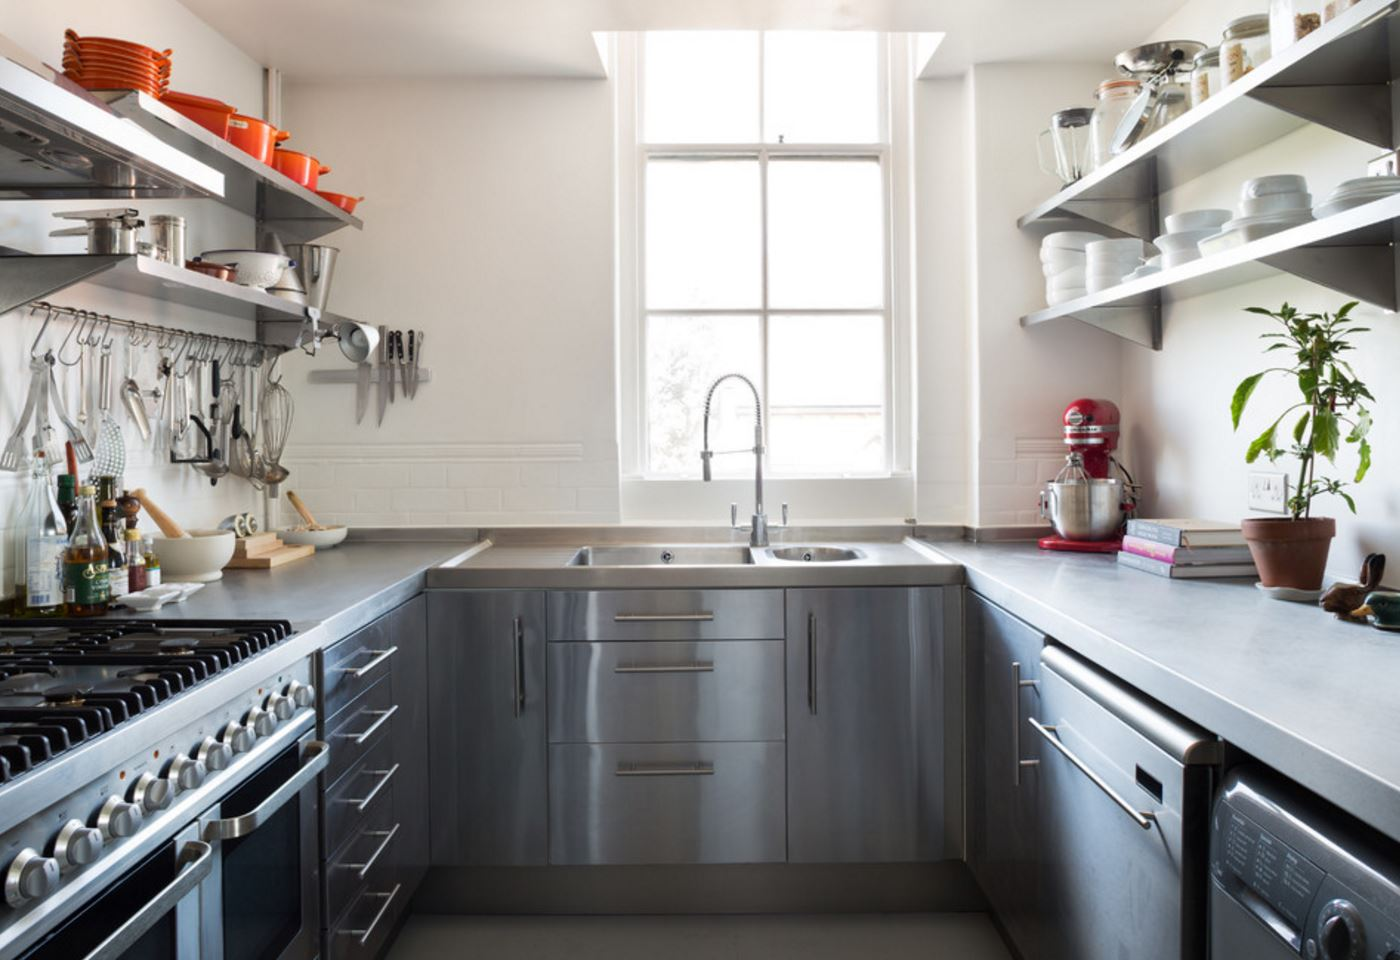 Integration-Interconnection for Charming Small Kitchen Design